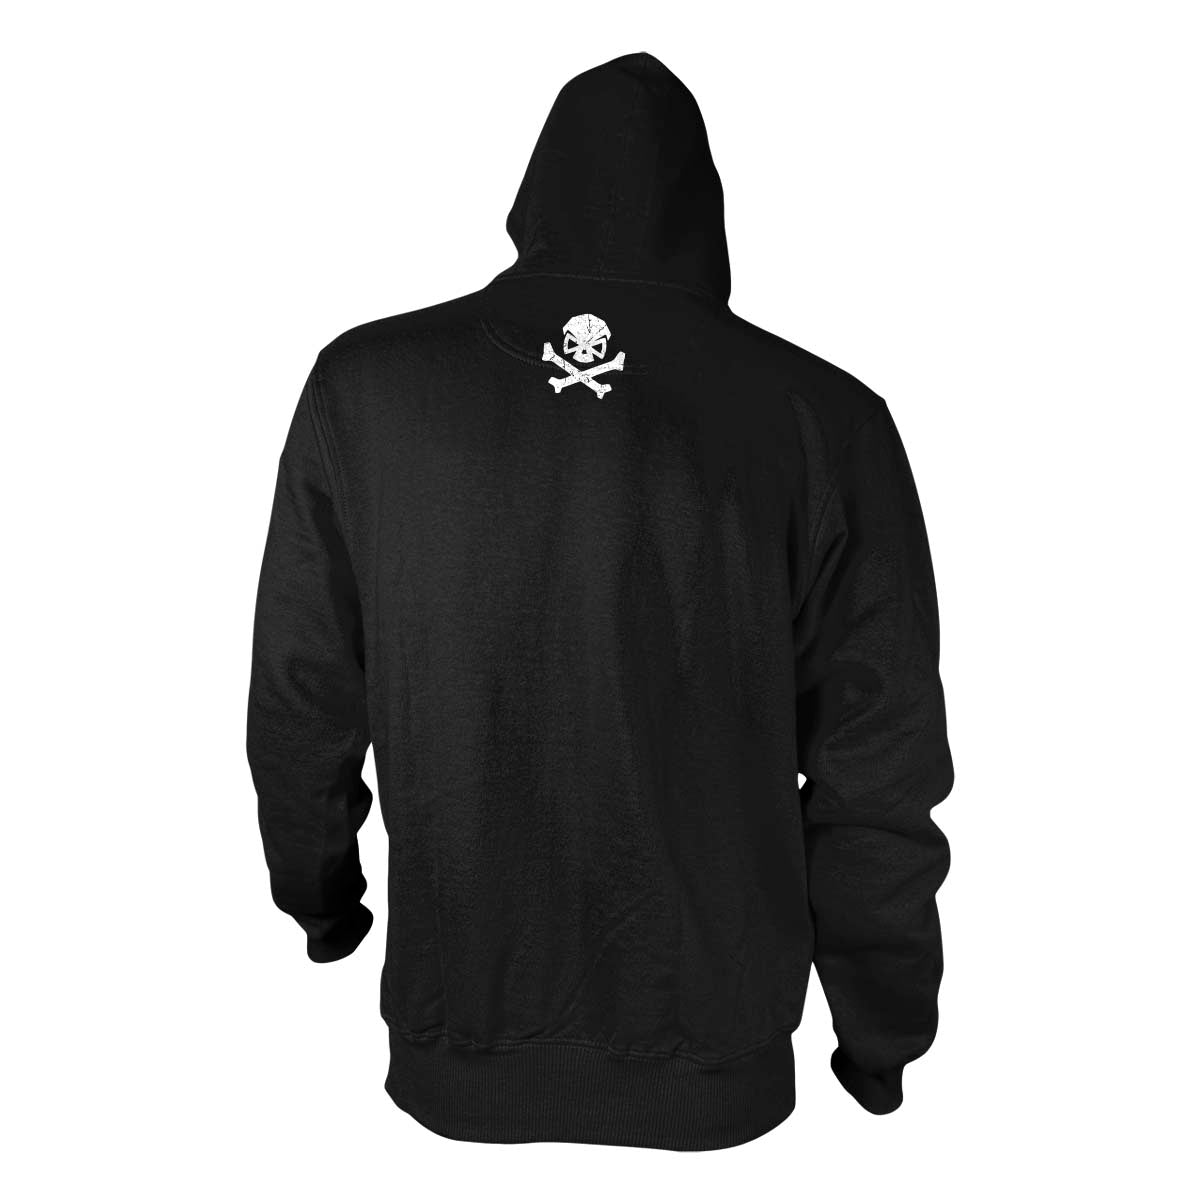 Darkest Soul - Hoodie -  - Hoodies - Pipe Hitters Union